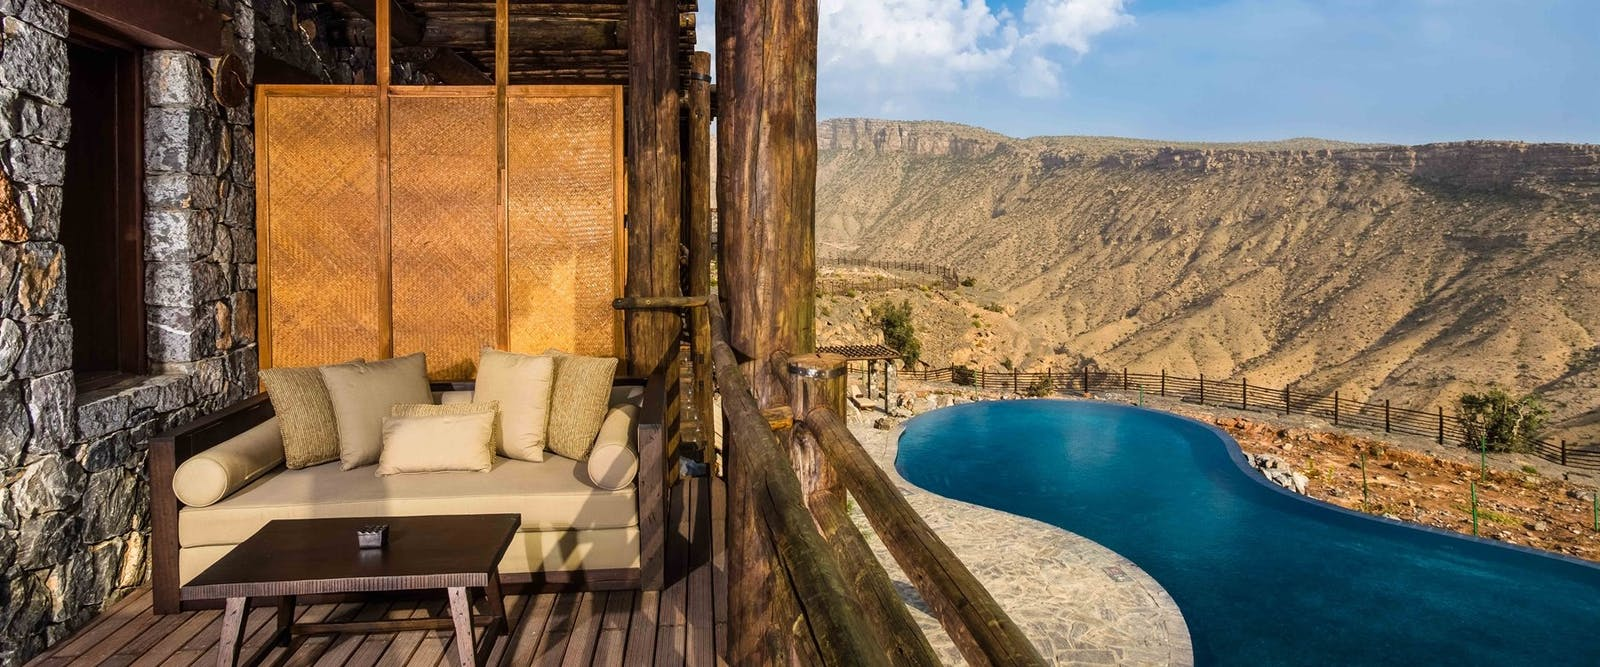 Suite Mountain View at Alila Jabal Akhdar